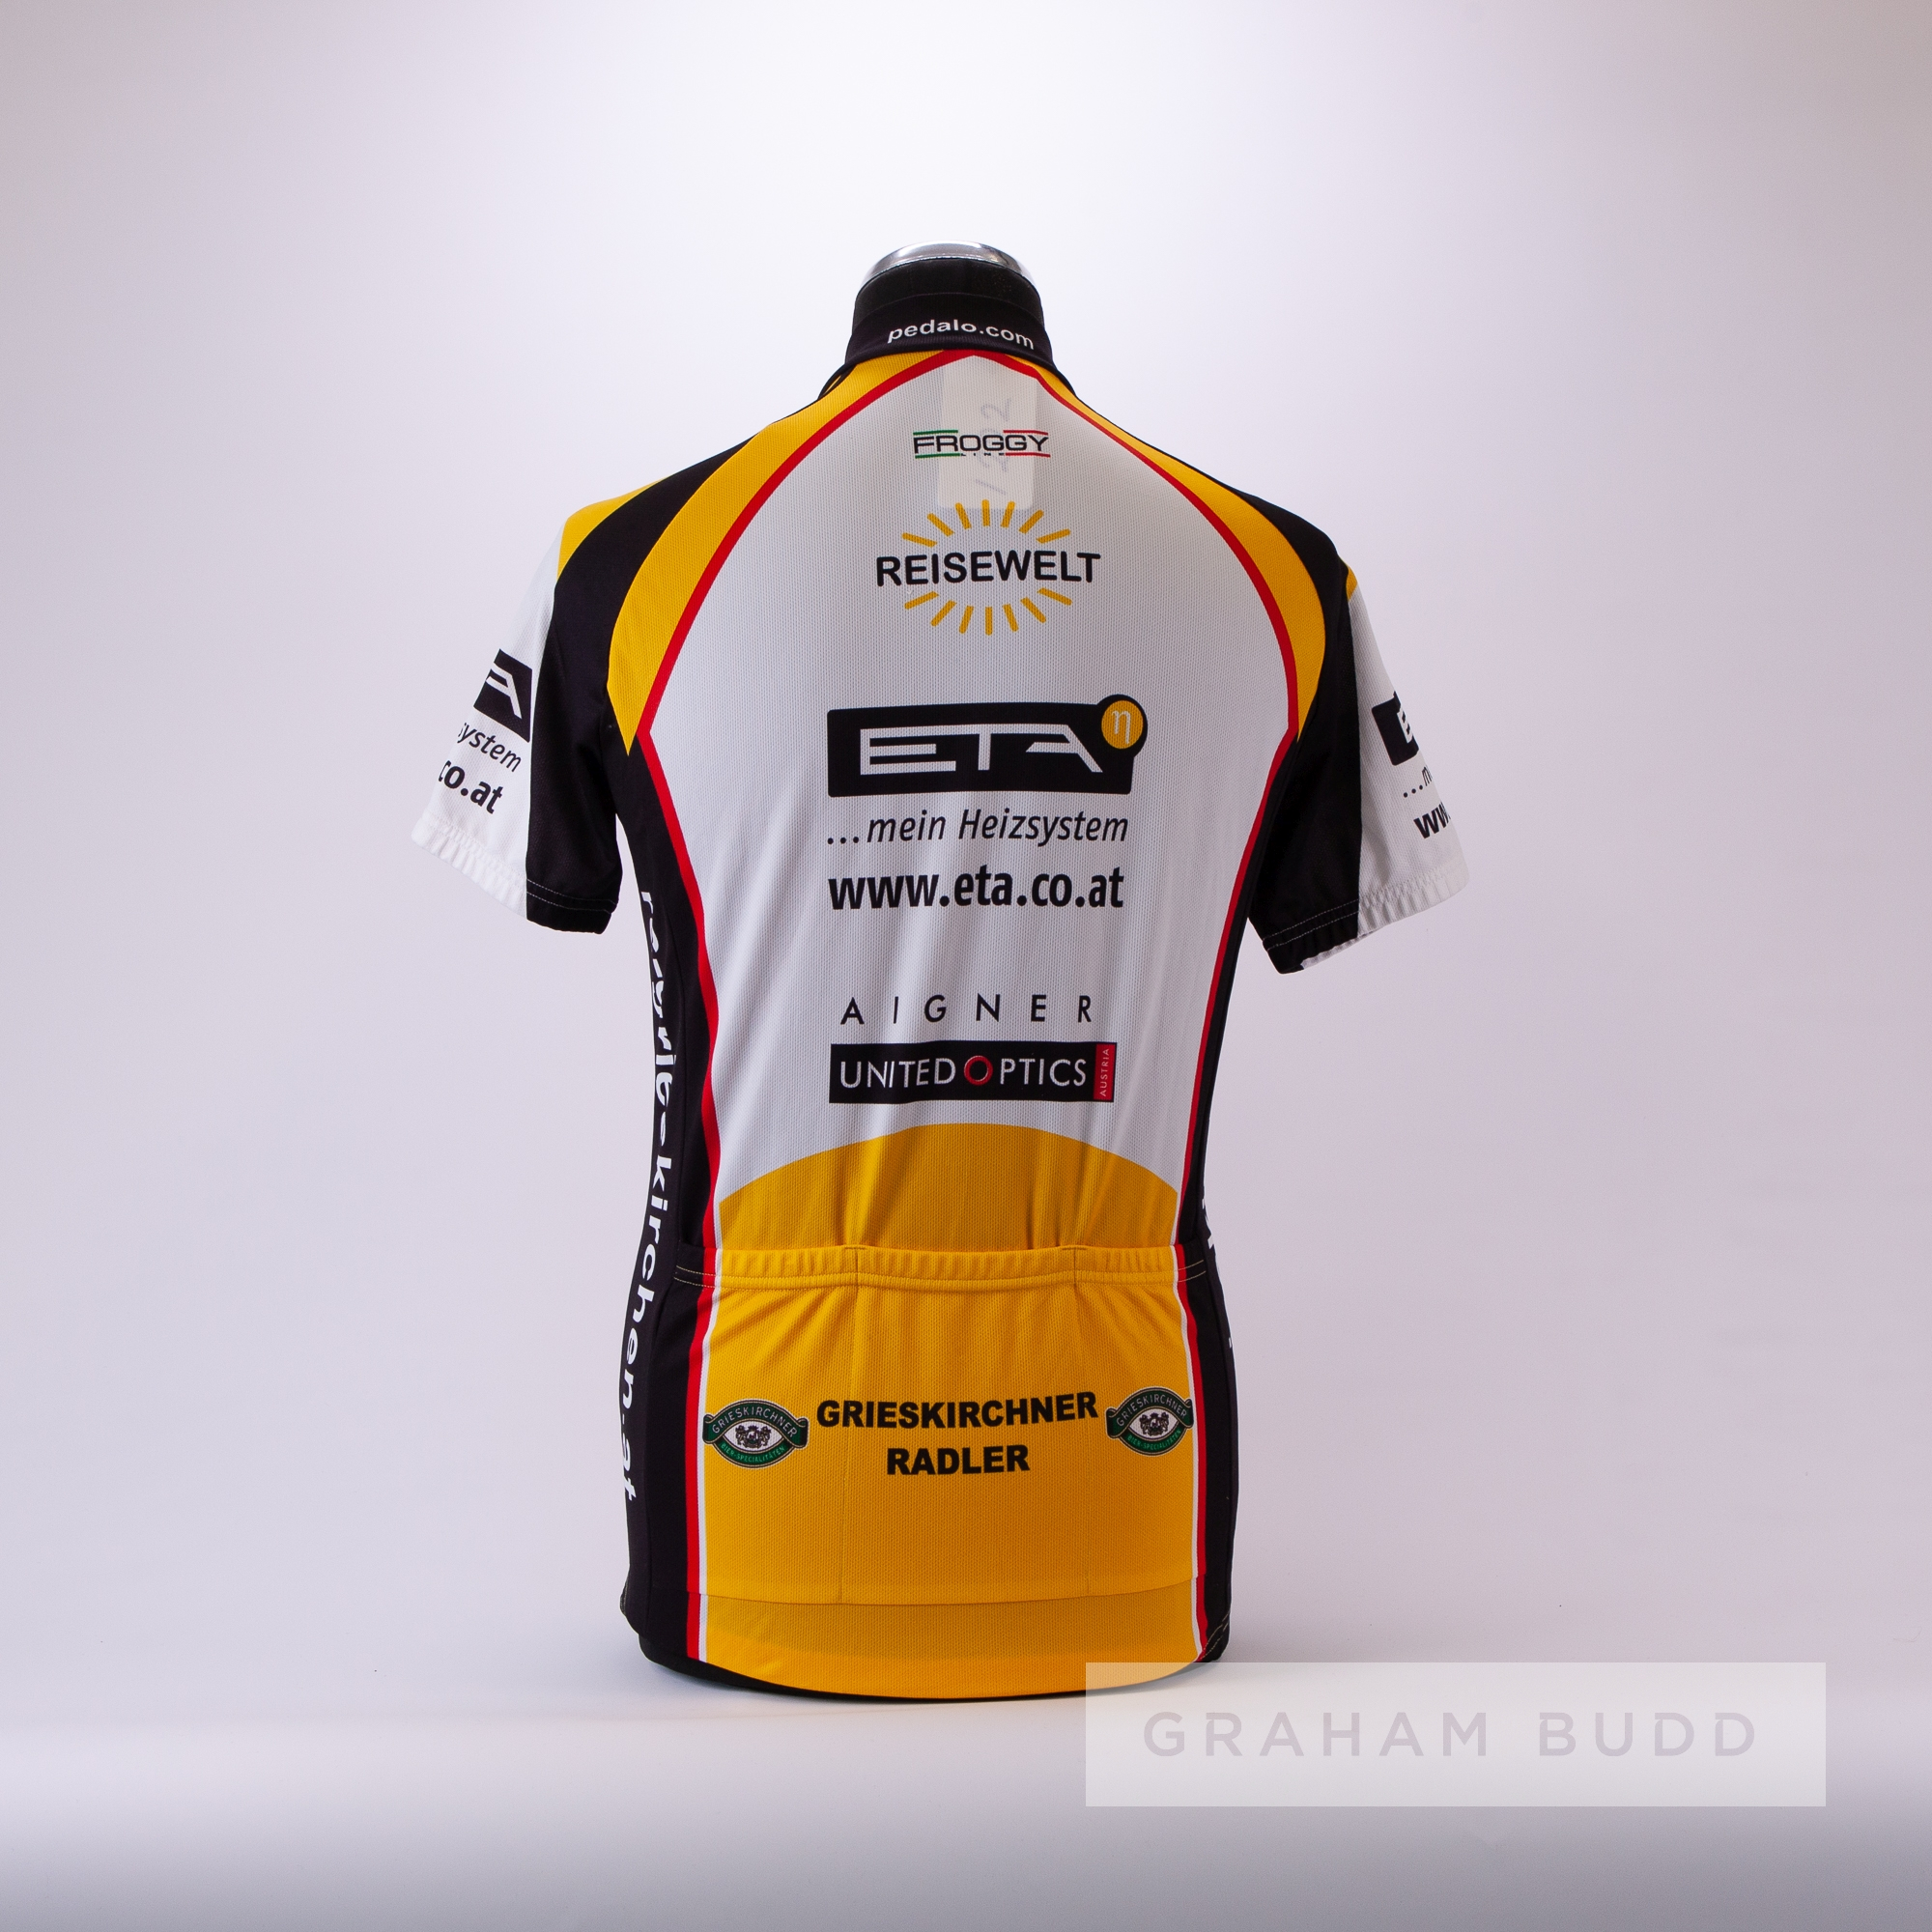 1992 white, black, red and gold Grieskirchen Radler Cycling road race jersey, scarce, polyester - Image 4 of 4